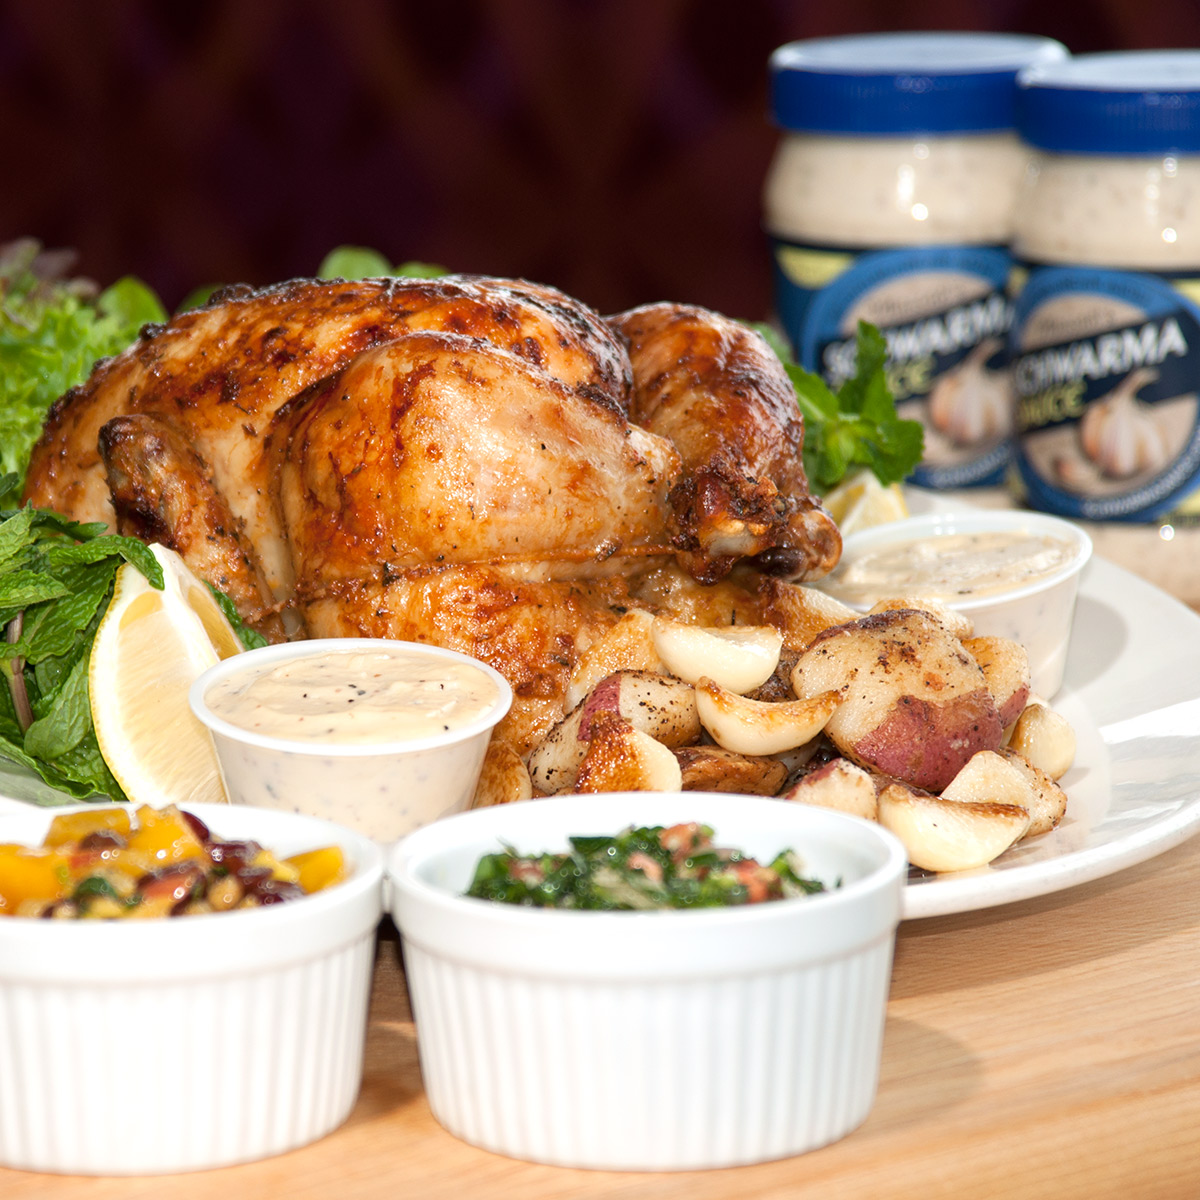 Delicious whole chicken from Olives Restaurant in Mankato, Minnesota.